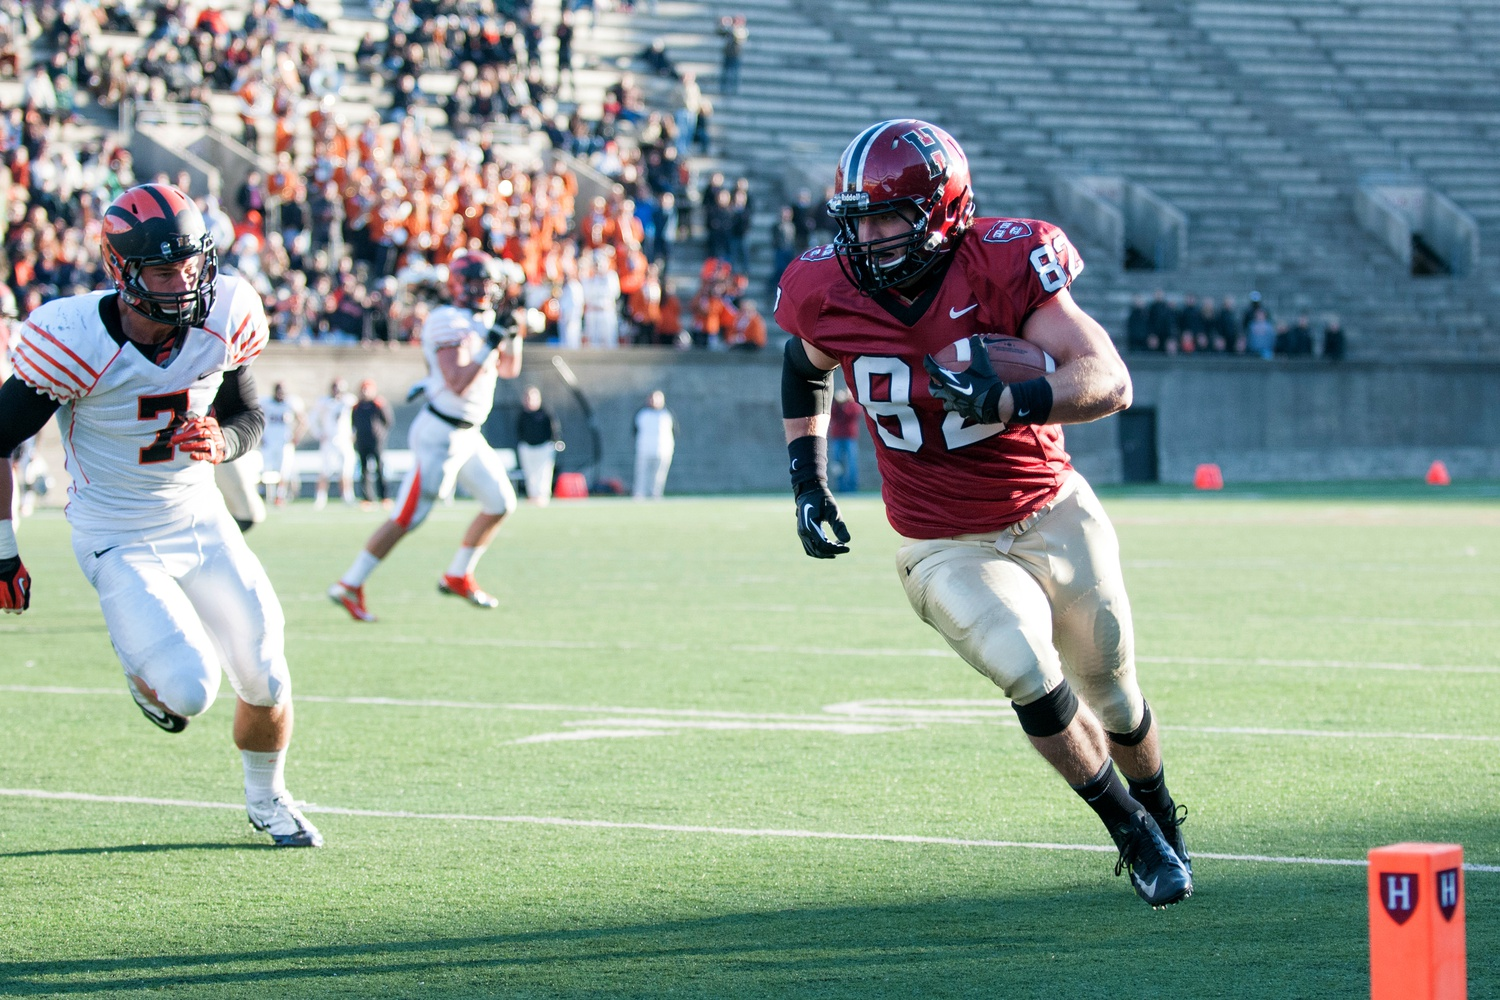 Tight end and long snapper Tyler Ott '14 heads for the end zone on Harvard's home turf against Princeton. Despite eventually falling to the Tigers 51-48 in this triple-overtime thriller on October 26, 2013—the Crimson's only loss of Ott's senior season—Ott finished the game with three touchdowns, tying the program record for single-game touchdown receptions.